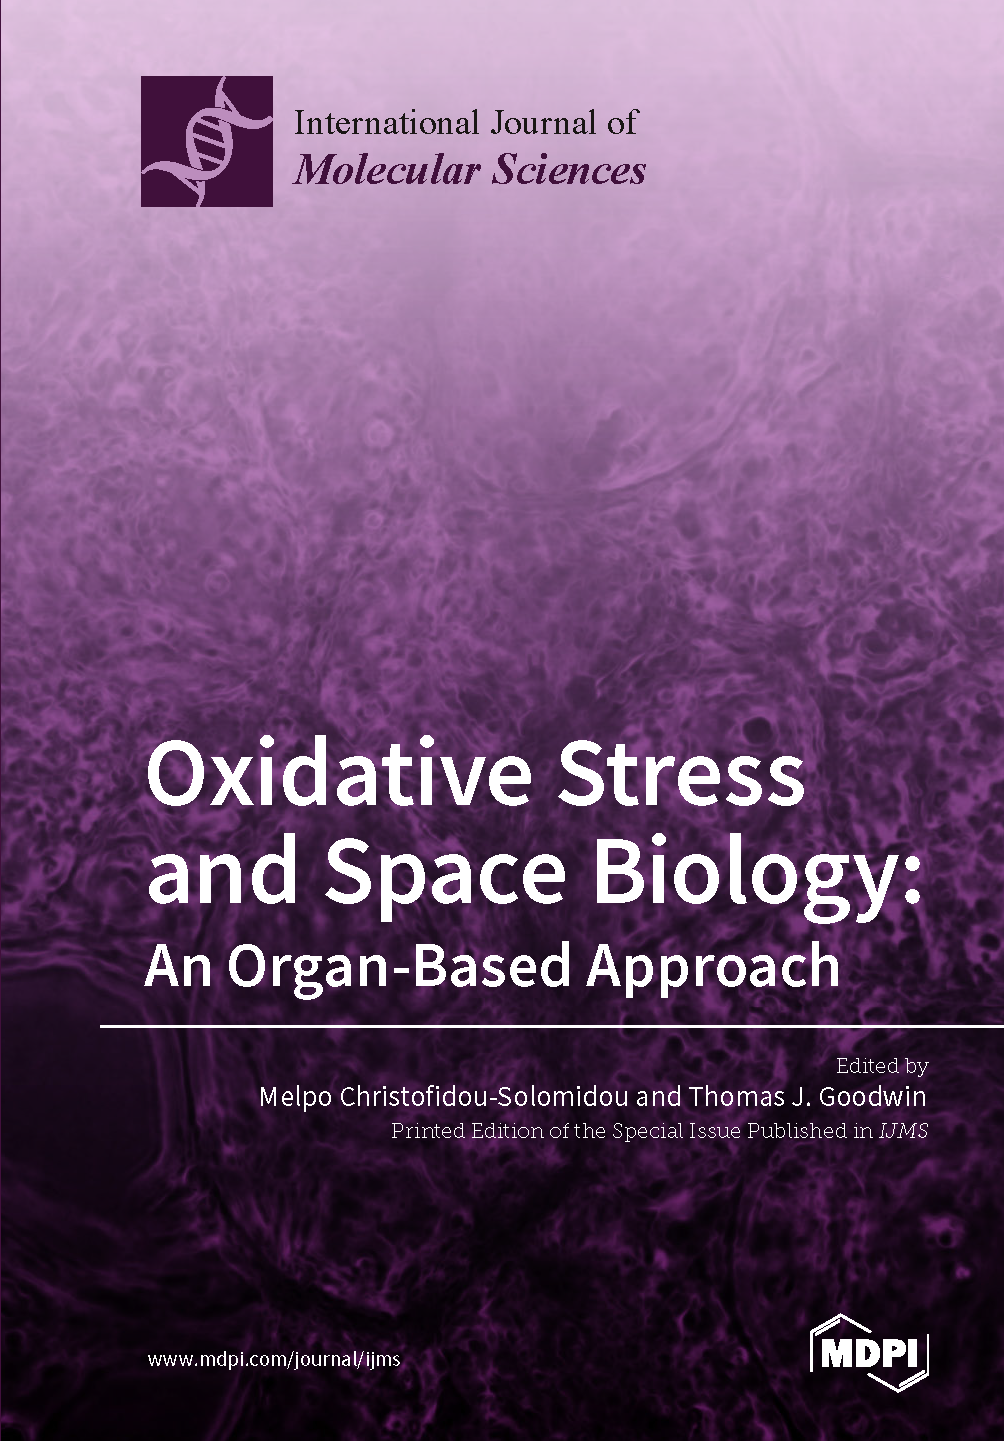 Oxidative Stress and Space Biology: An Organ-Based Approach